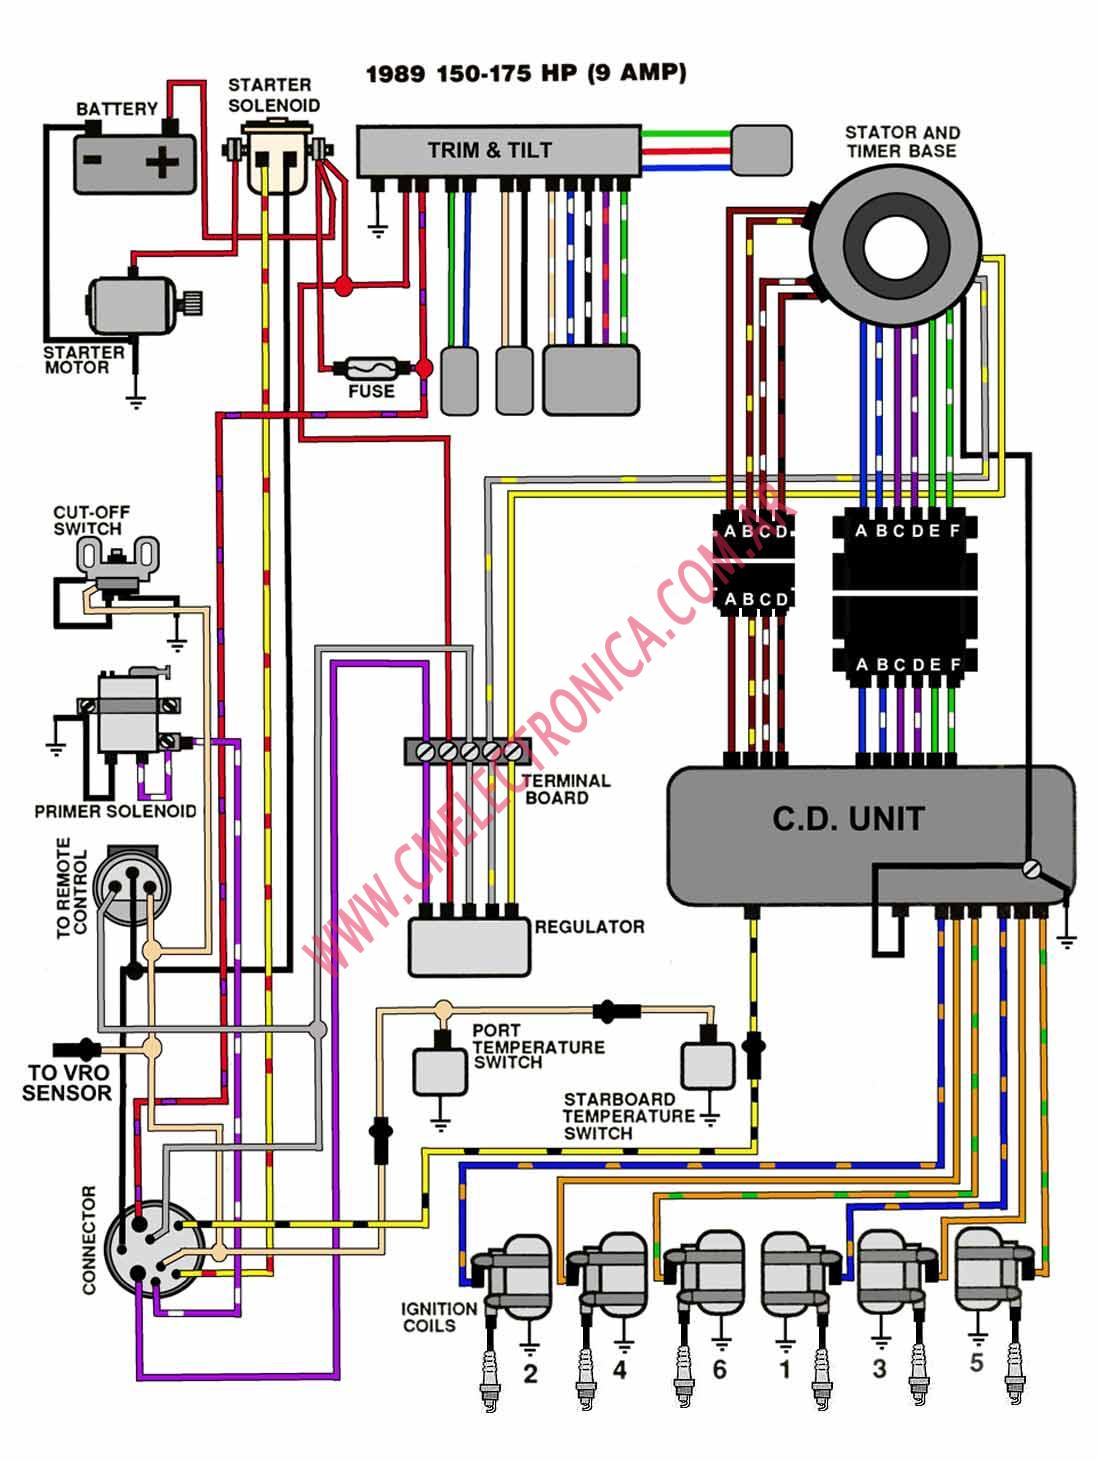 outboard engine wiring diagram mercury 40 1979 wirdig force outboard wiring diagram likewise 115 hp mercury outboard wiring